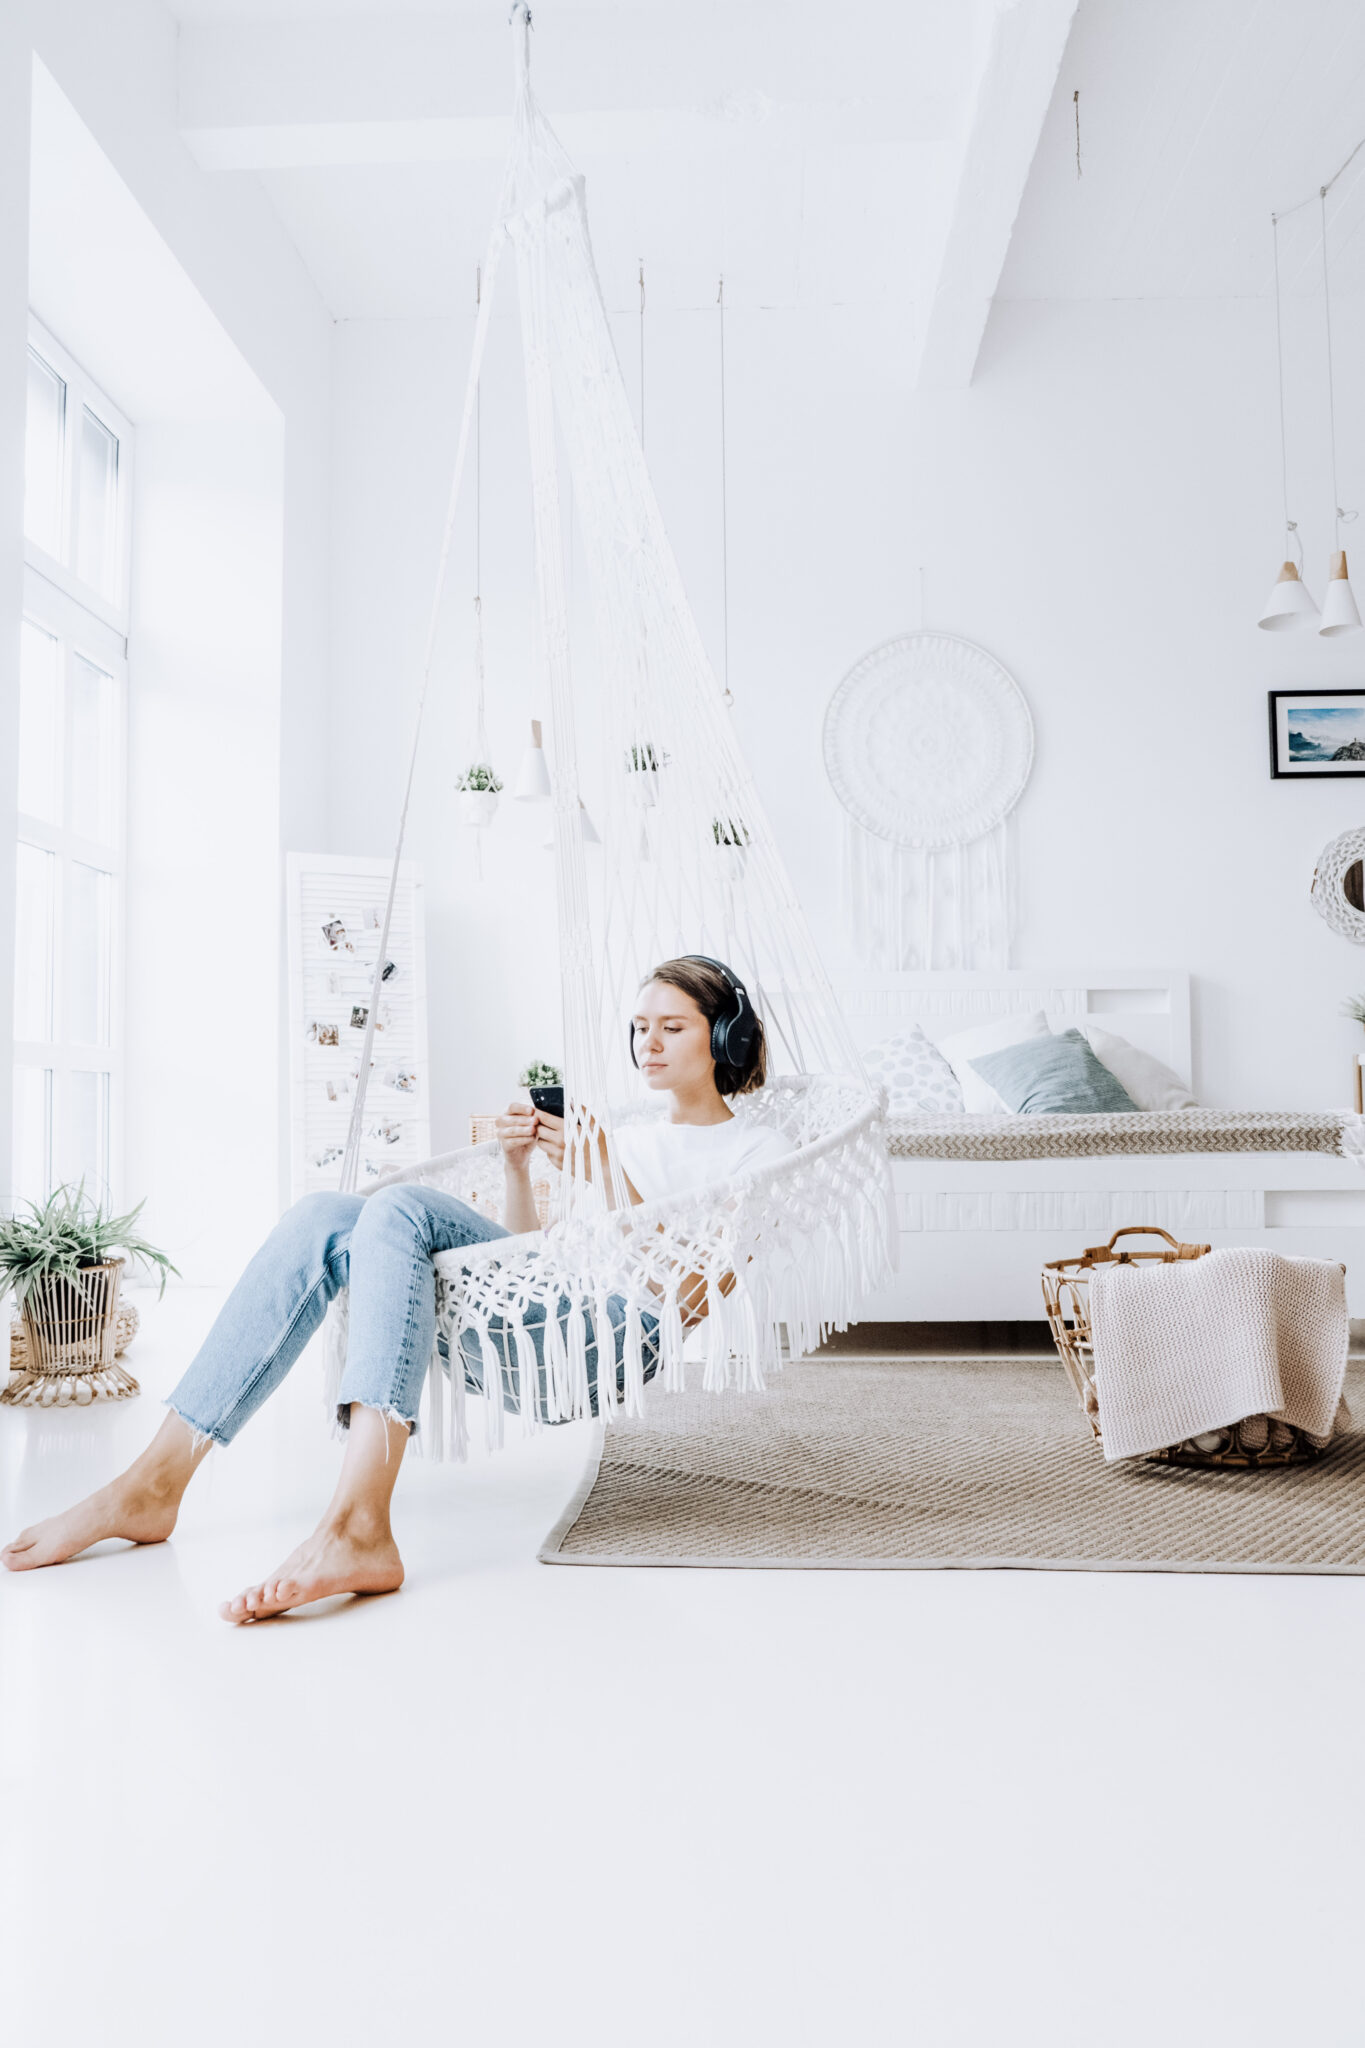 A woman in a bright white room with macramé sits in a macramé swing, listening to something on her phone with headphones. A great place to enjoy Christian audio books.